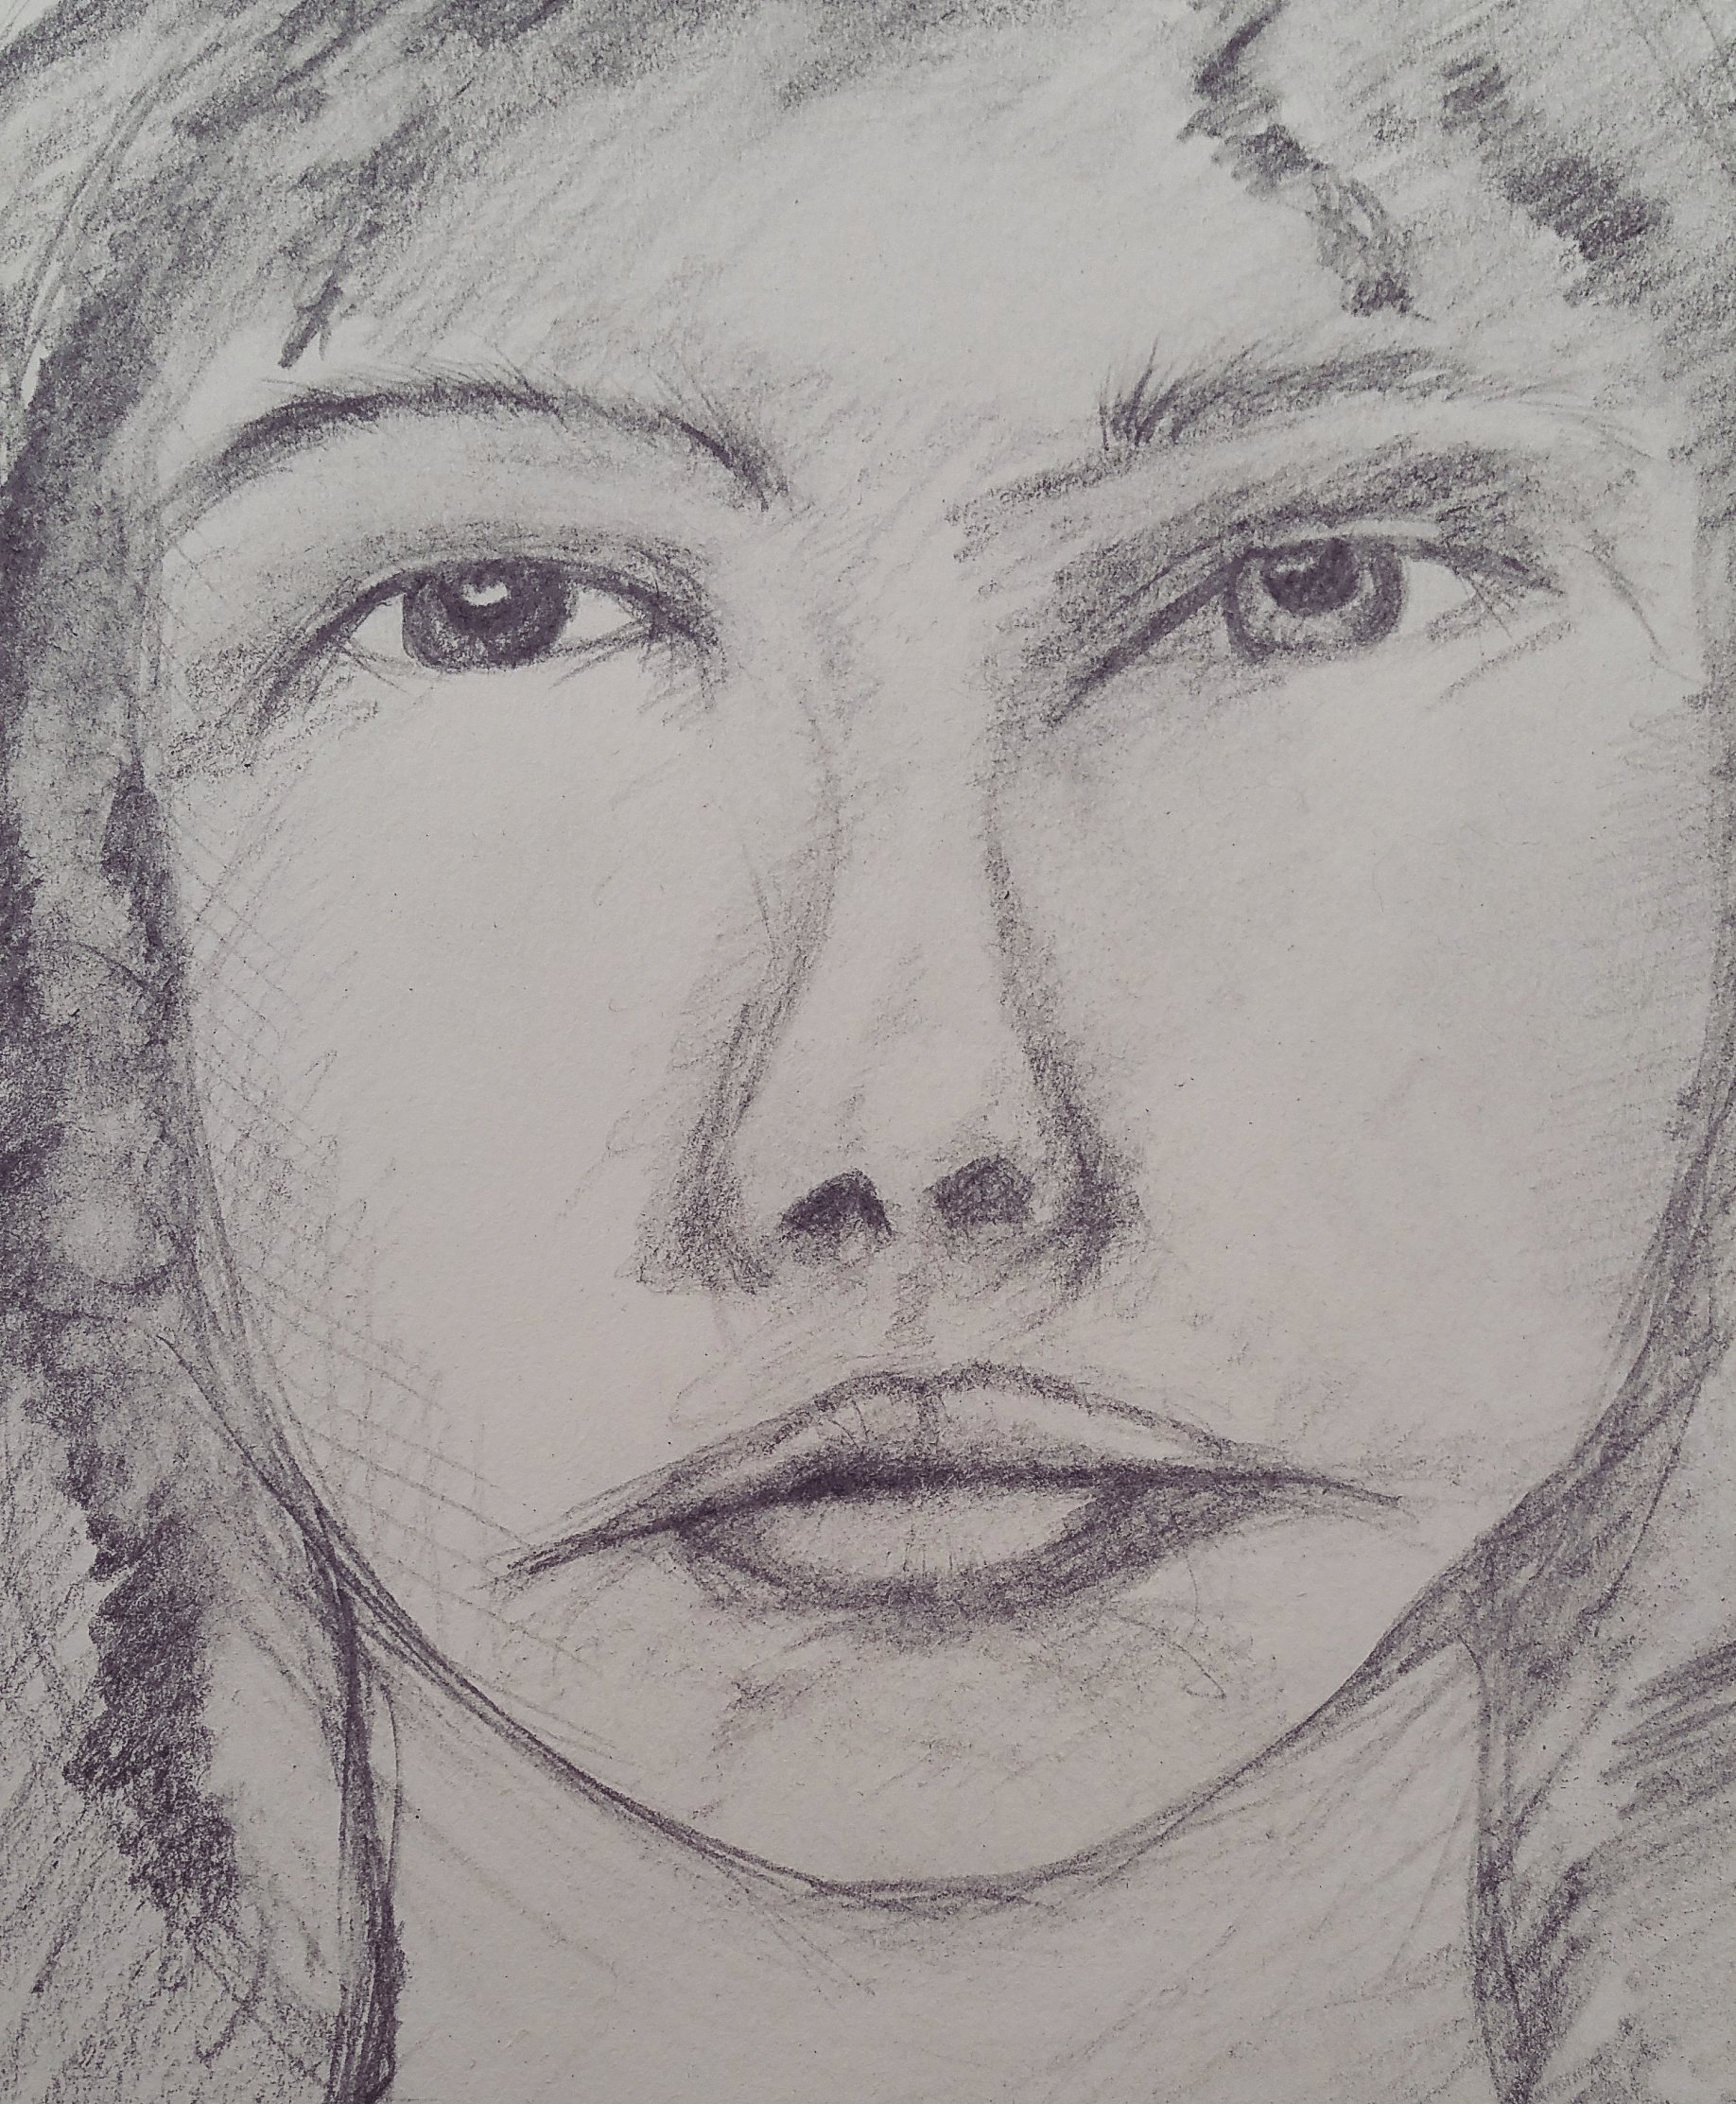 4 Days of Portrait Sketching